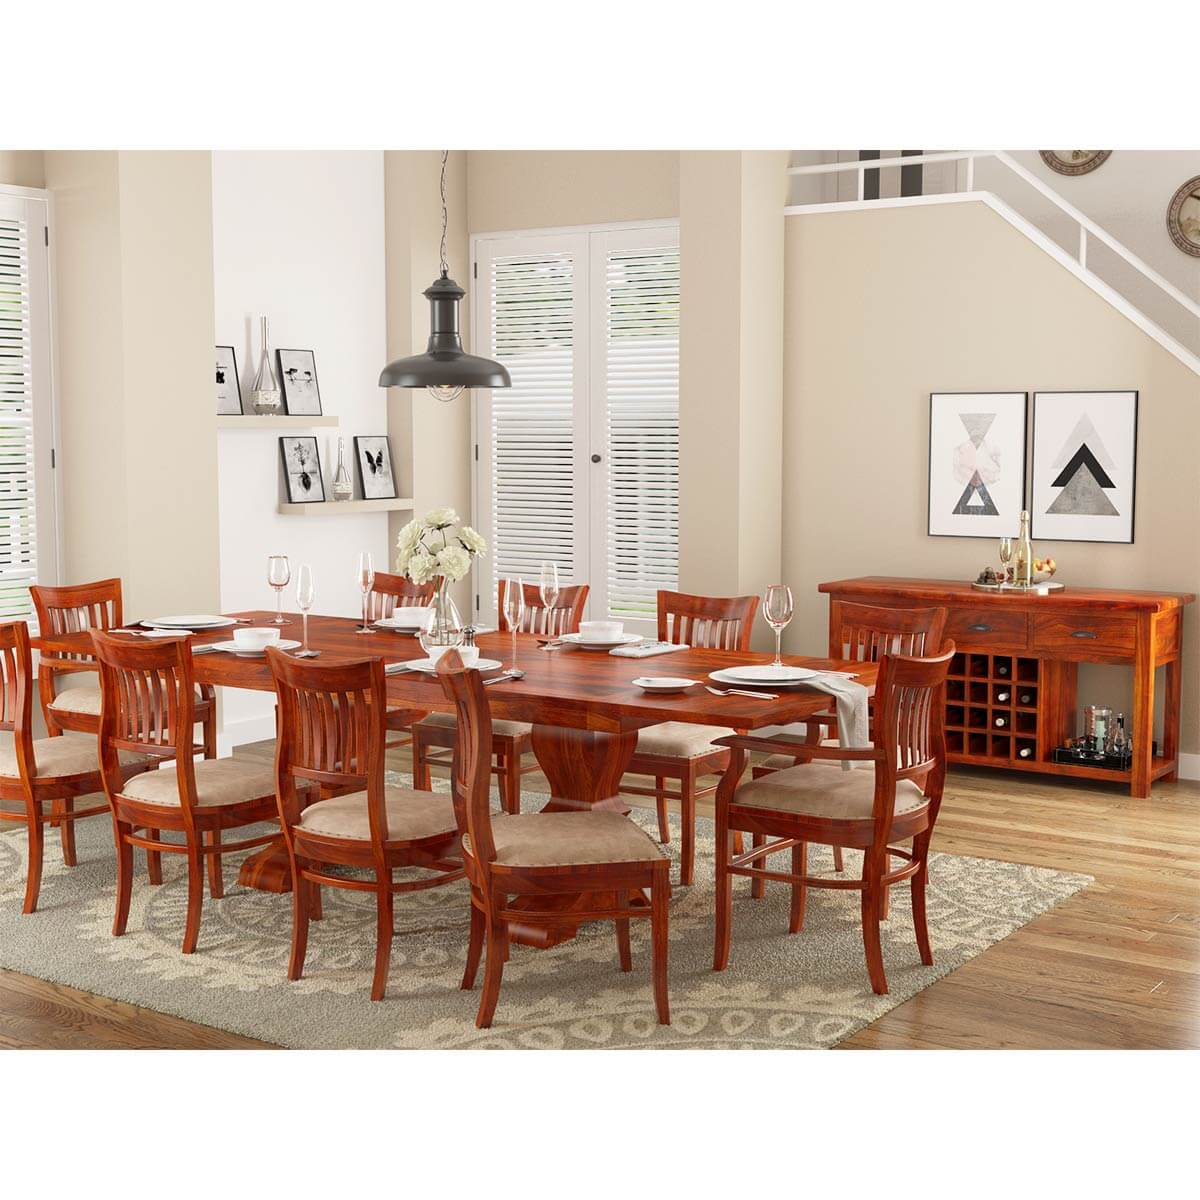 Rosewood Dining Room Set: Chantilly Chic Handcrafted Rosewood 12 Piece Dining Room Set